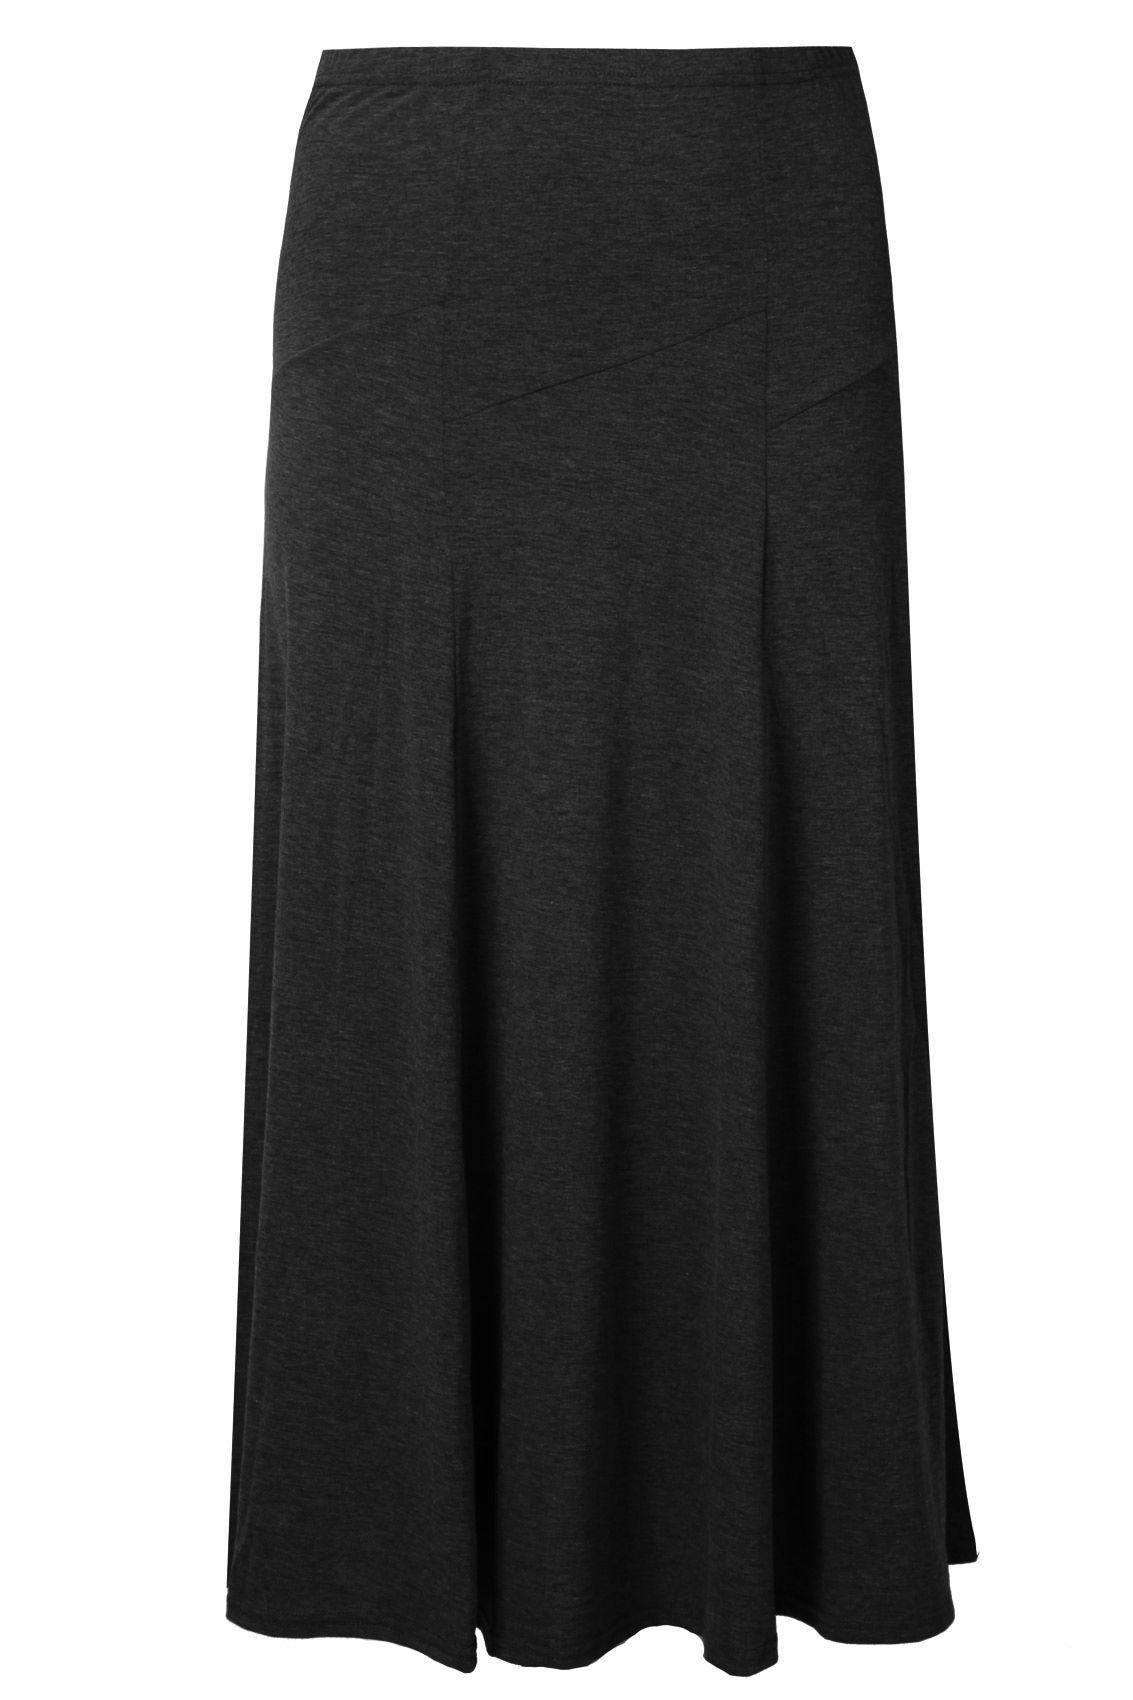 black panelled jersey maxi skirt plus size 16 18 20 22 24